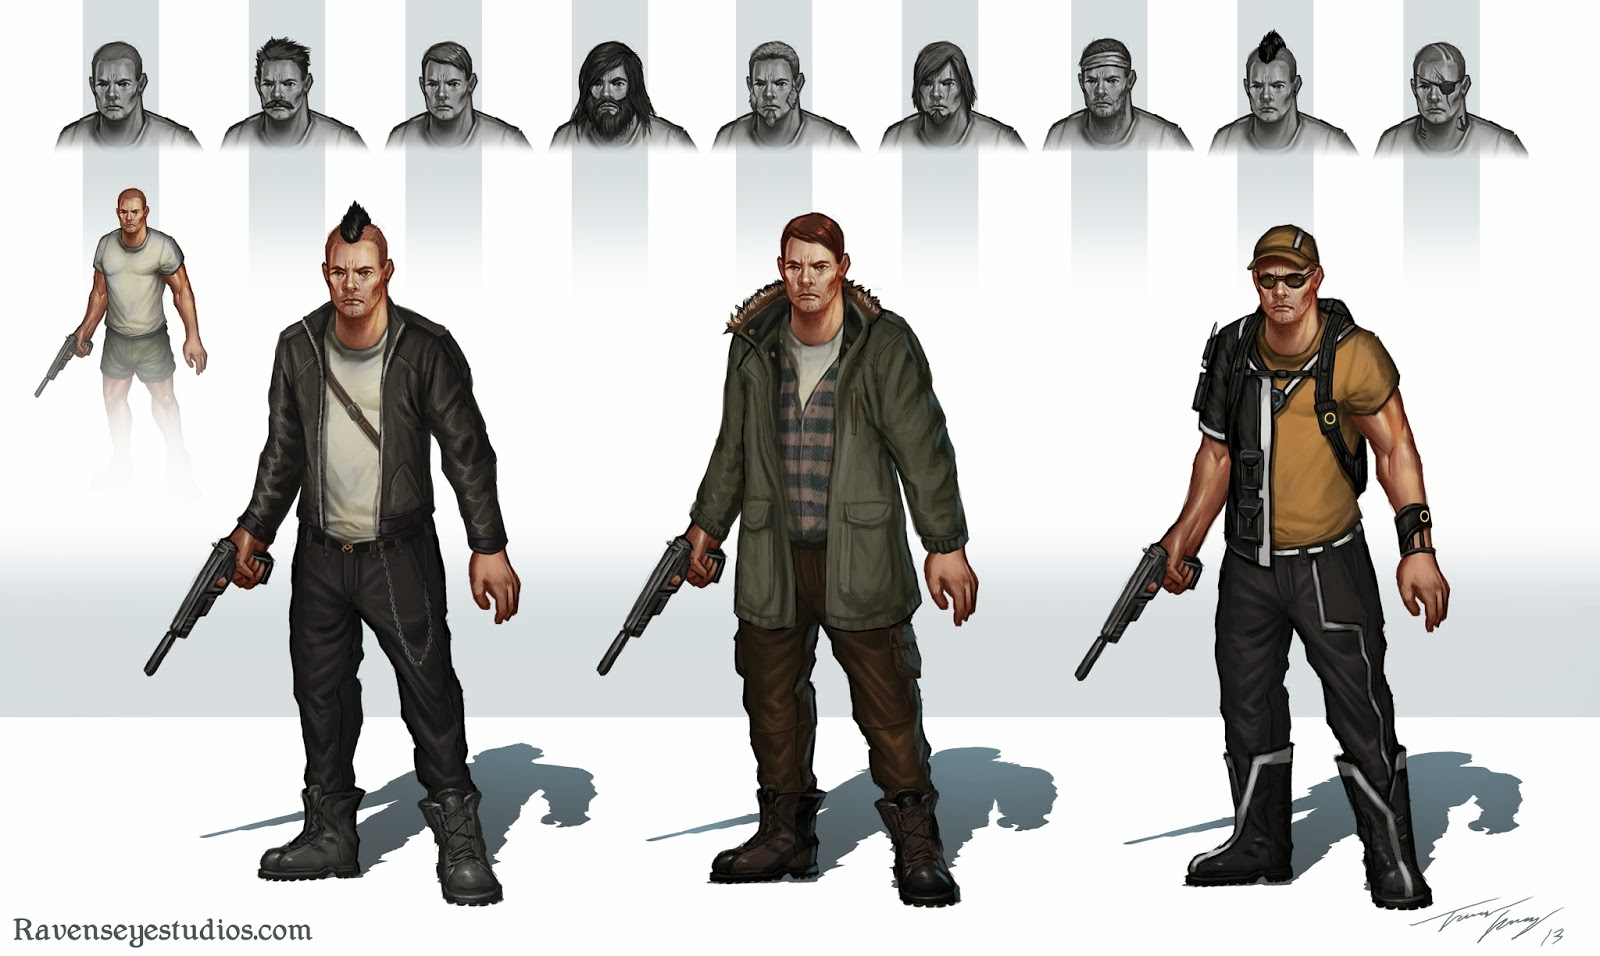 Character And Npc Design : Concept art and design of travis lacey ravenseye studios